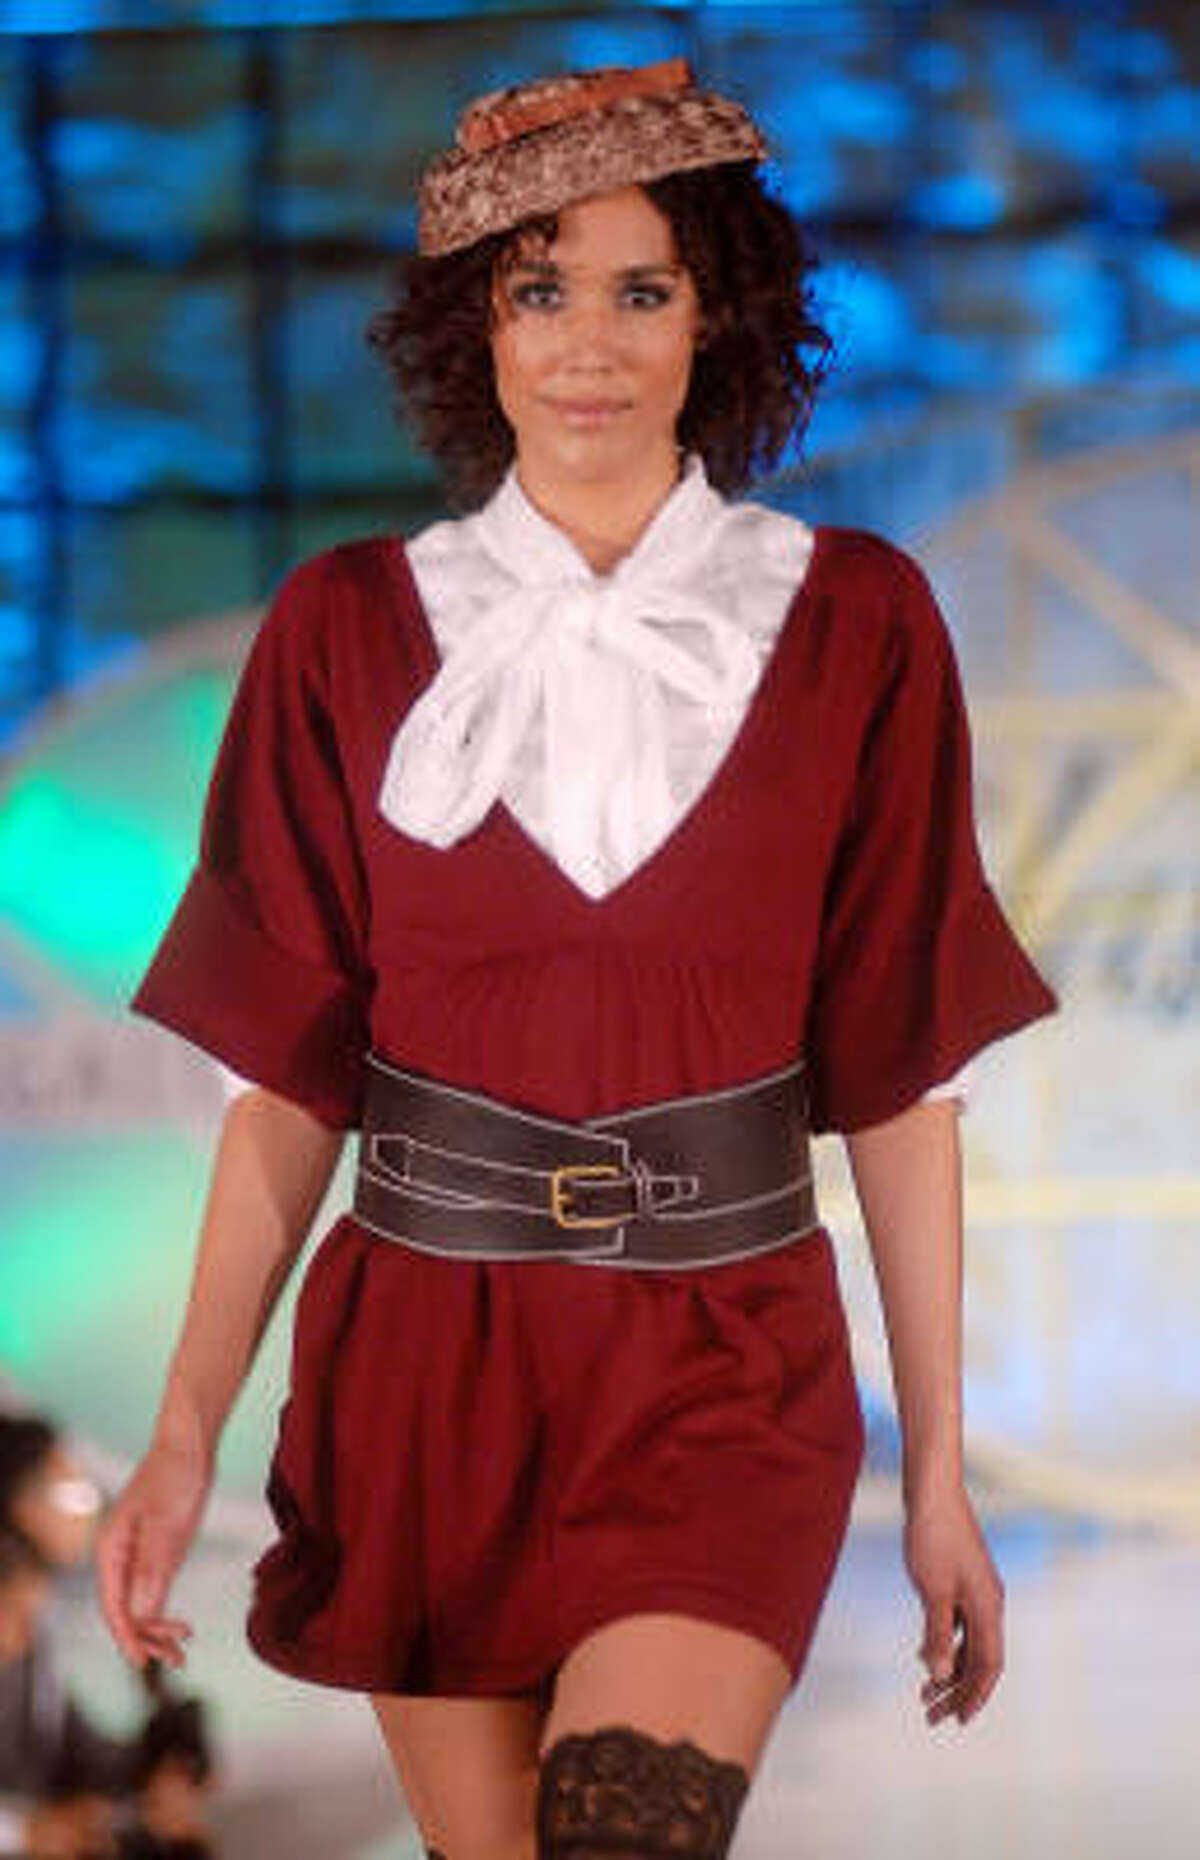 Fall is here and so are this season's trends. A model wears Billy Reid at the Simon Fashion Now fashion show at The Galleria Thursday, Sept. 17,2009. Read more about fall fashion here.